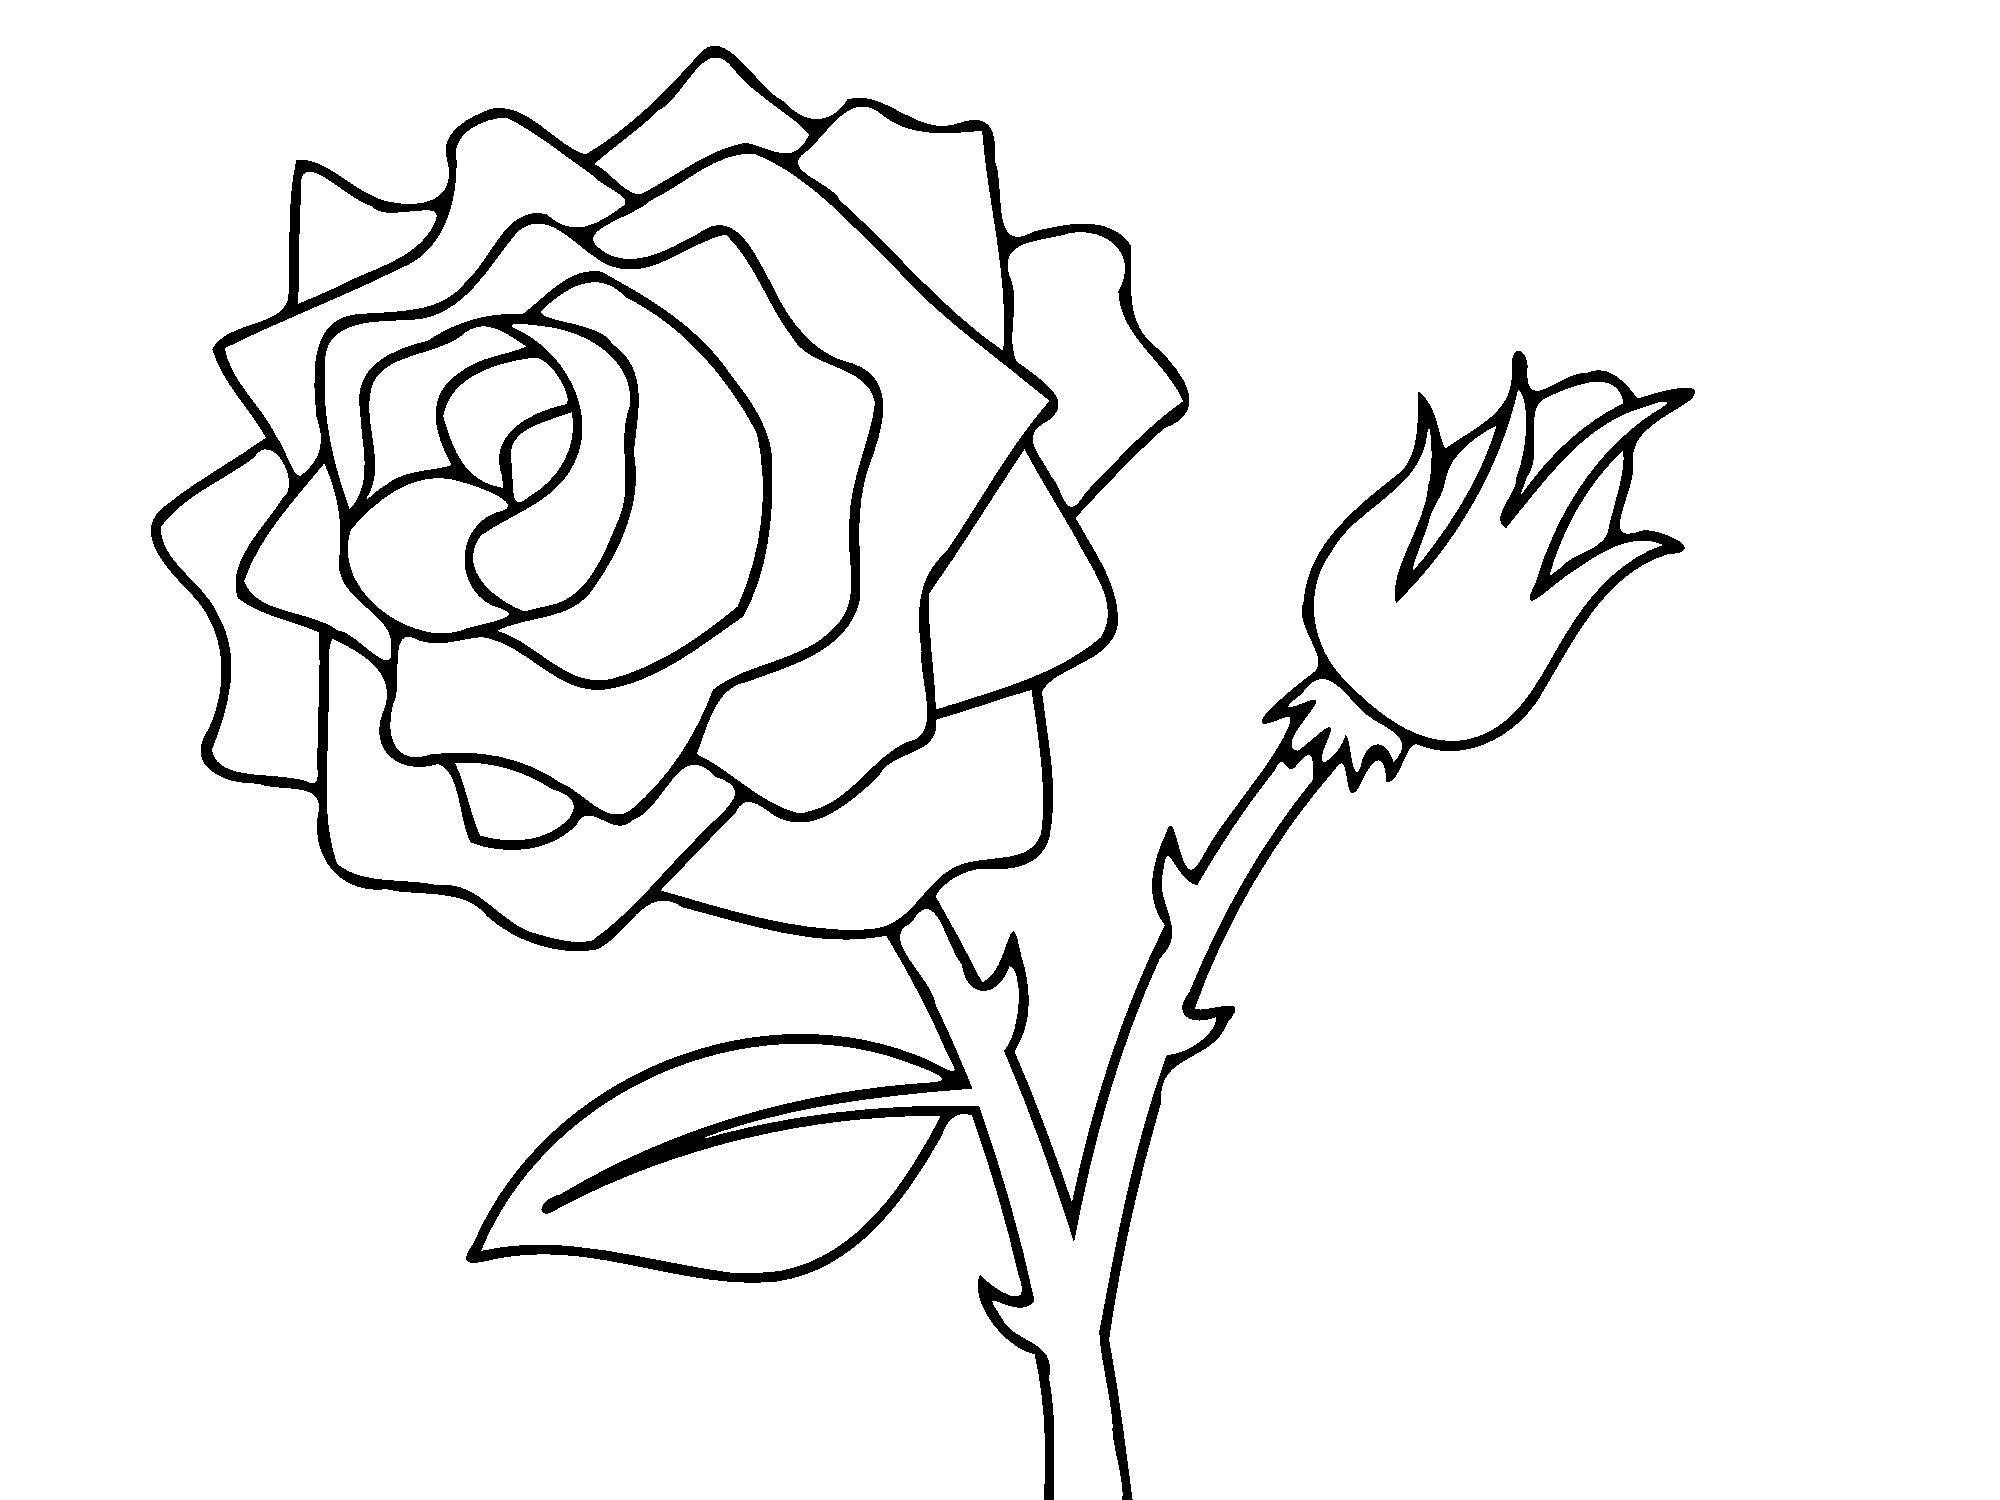 2000x1500 Rose Flower Drawings For Kids Nice Roses Coloring Page For Kids